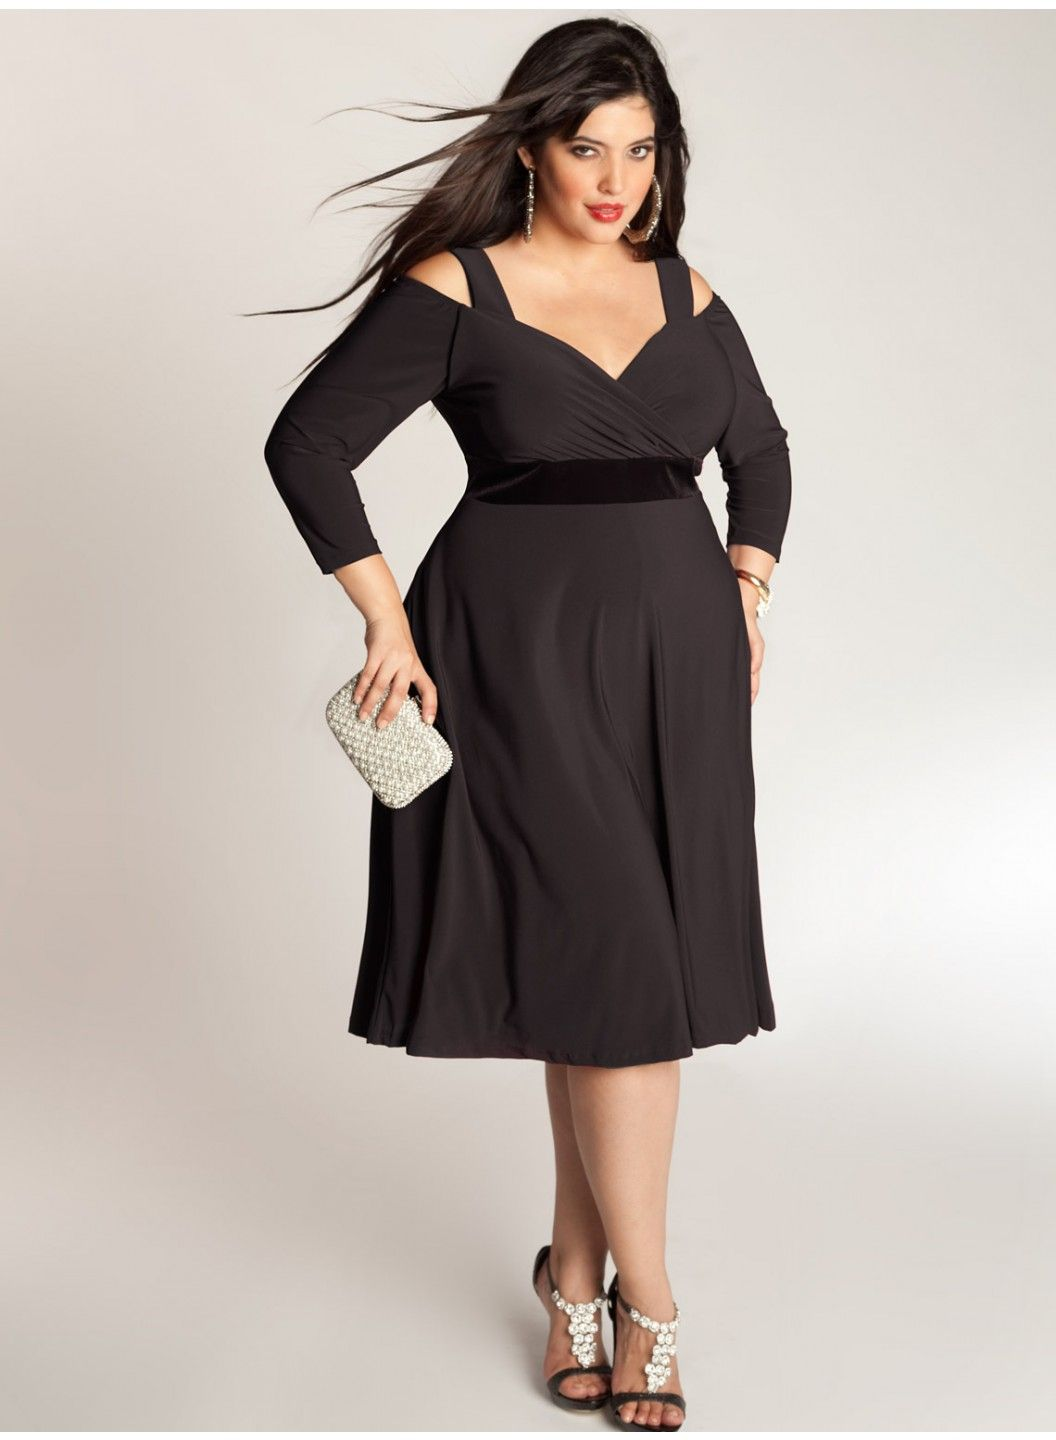 081722a6254 Siren Dress in Black by Igigi for the voluptuous woman. This dress  perfectly compliments the fuller bust